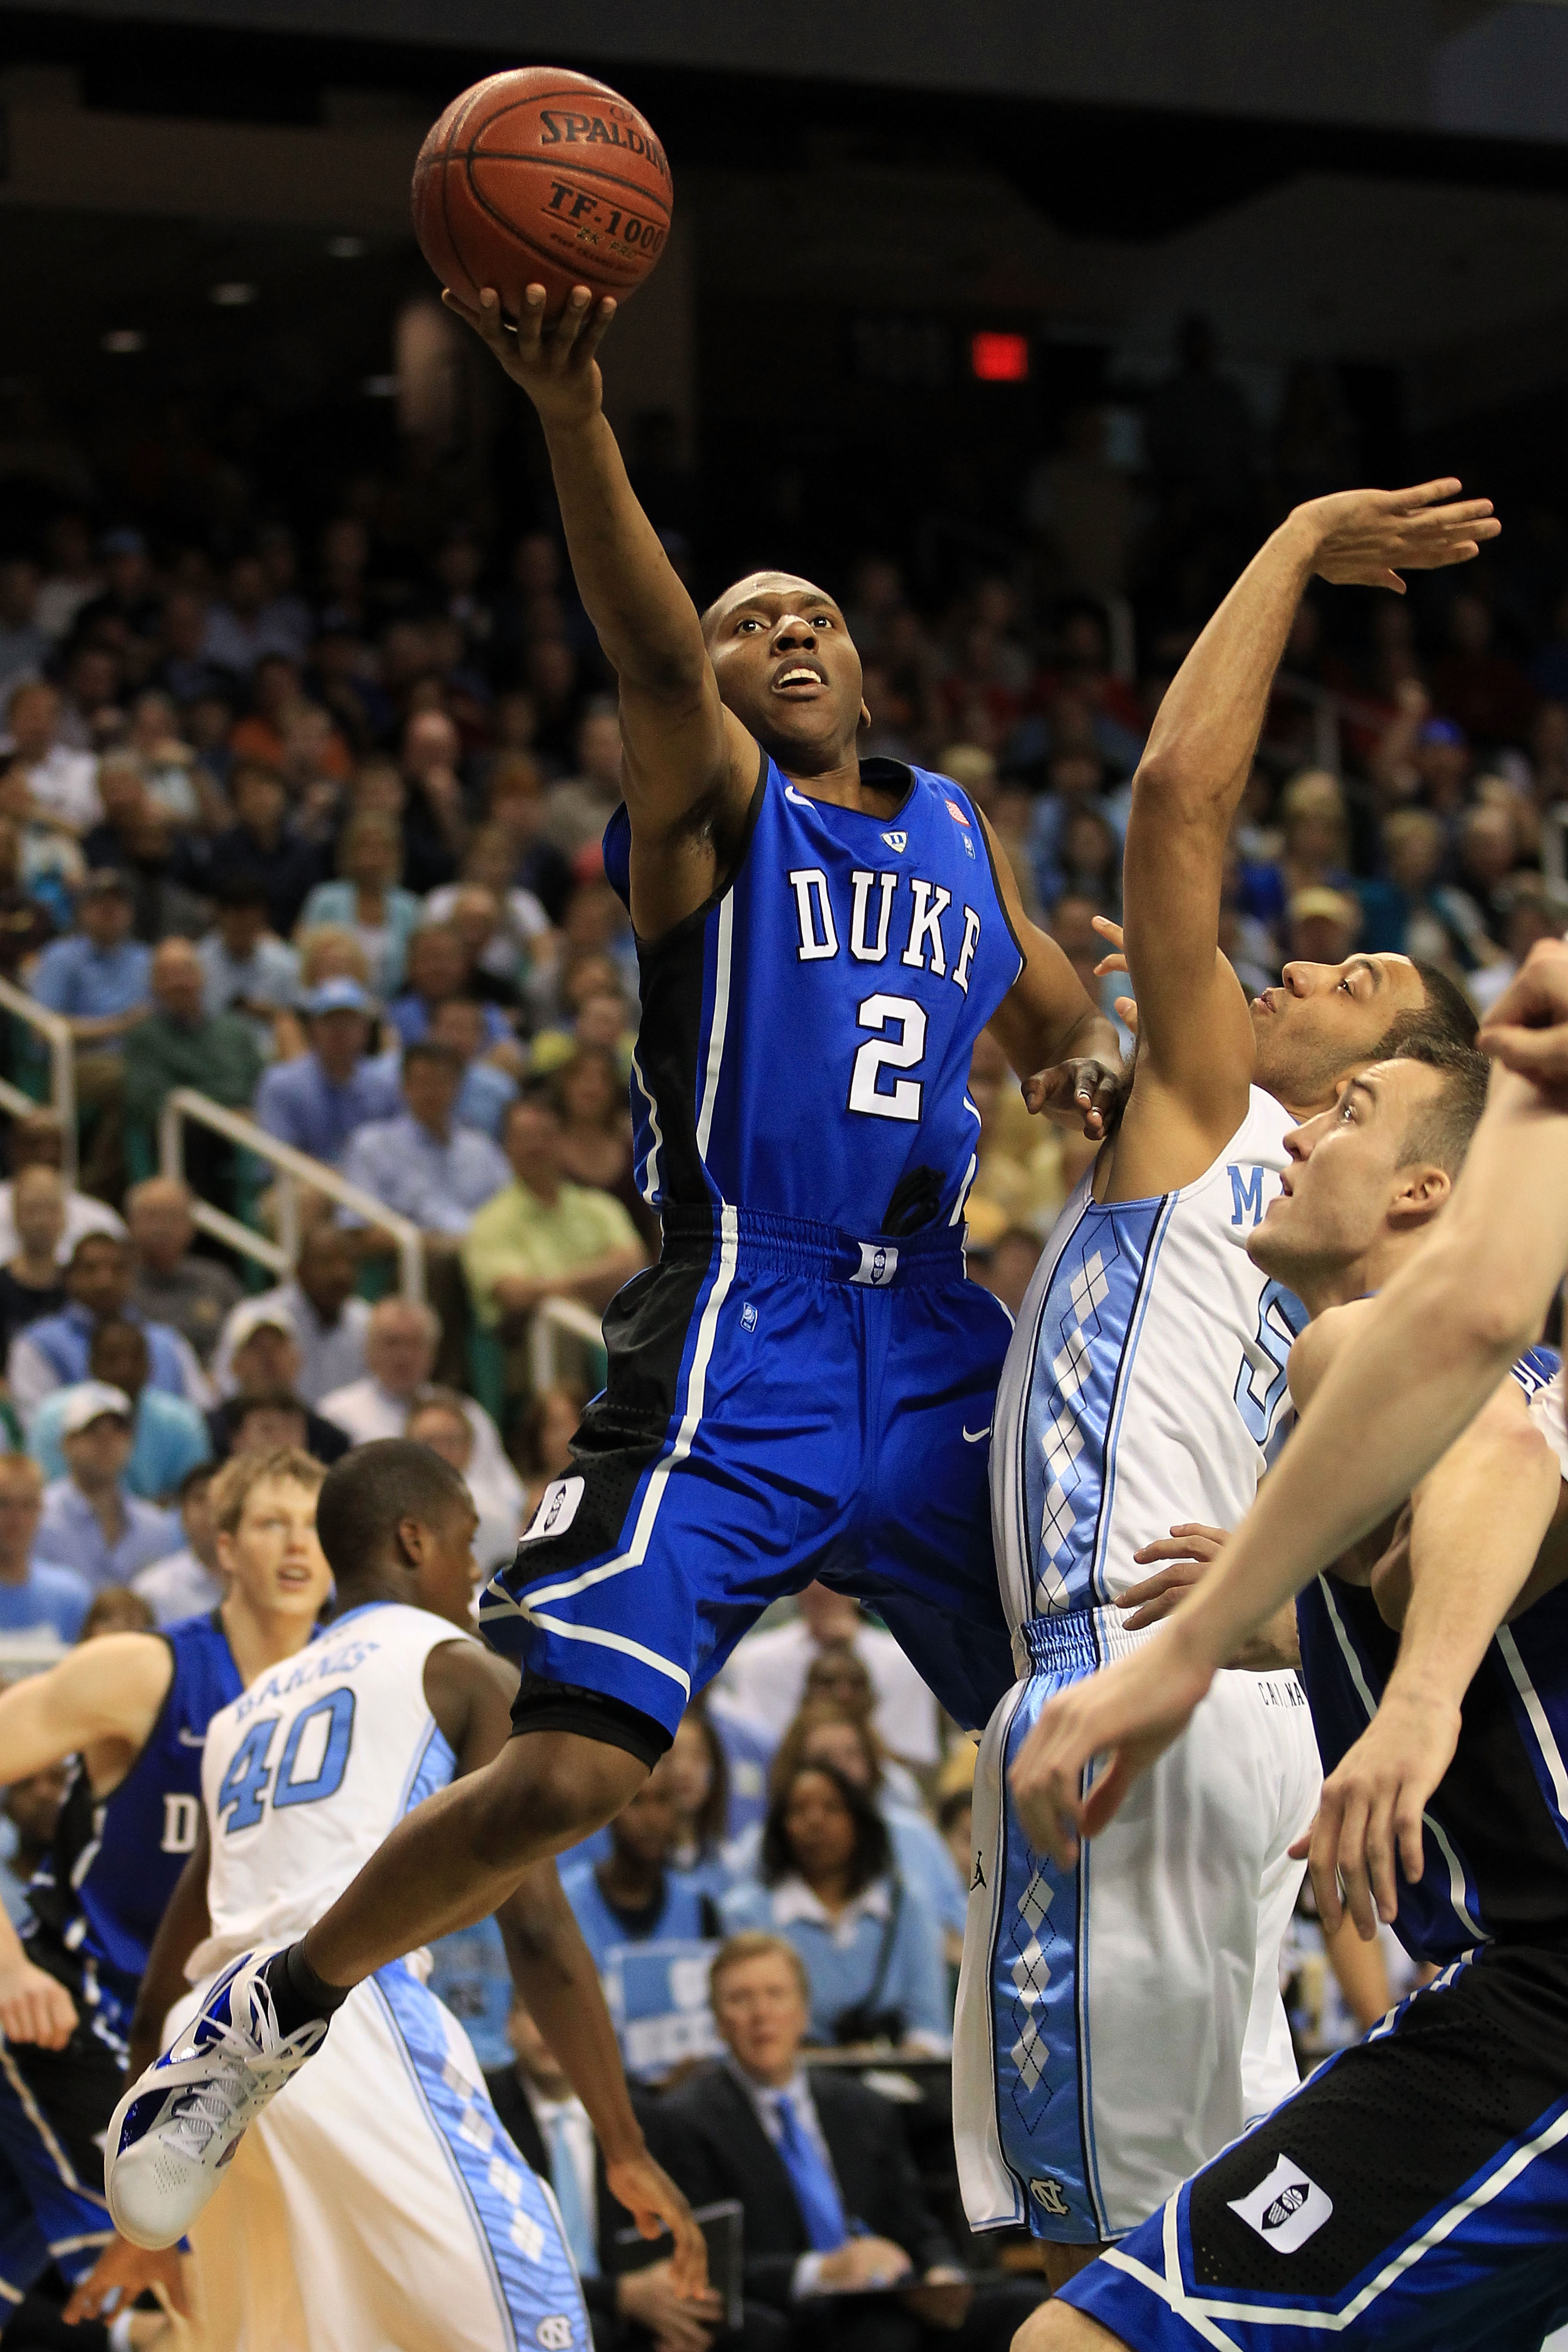 GREENSBORO, NC - MARCH 13:  Nolan Smith #2 of the Duke Blue Devils shoots against Kendall Marshall #5 of the North Carolina Tar Heels during the first half in the championship game of the 2011 ACC men's basketball tournament at the Greensboro Coliseum on